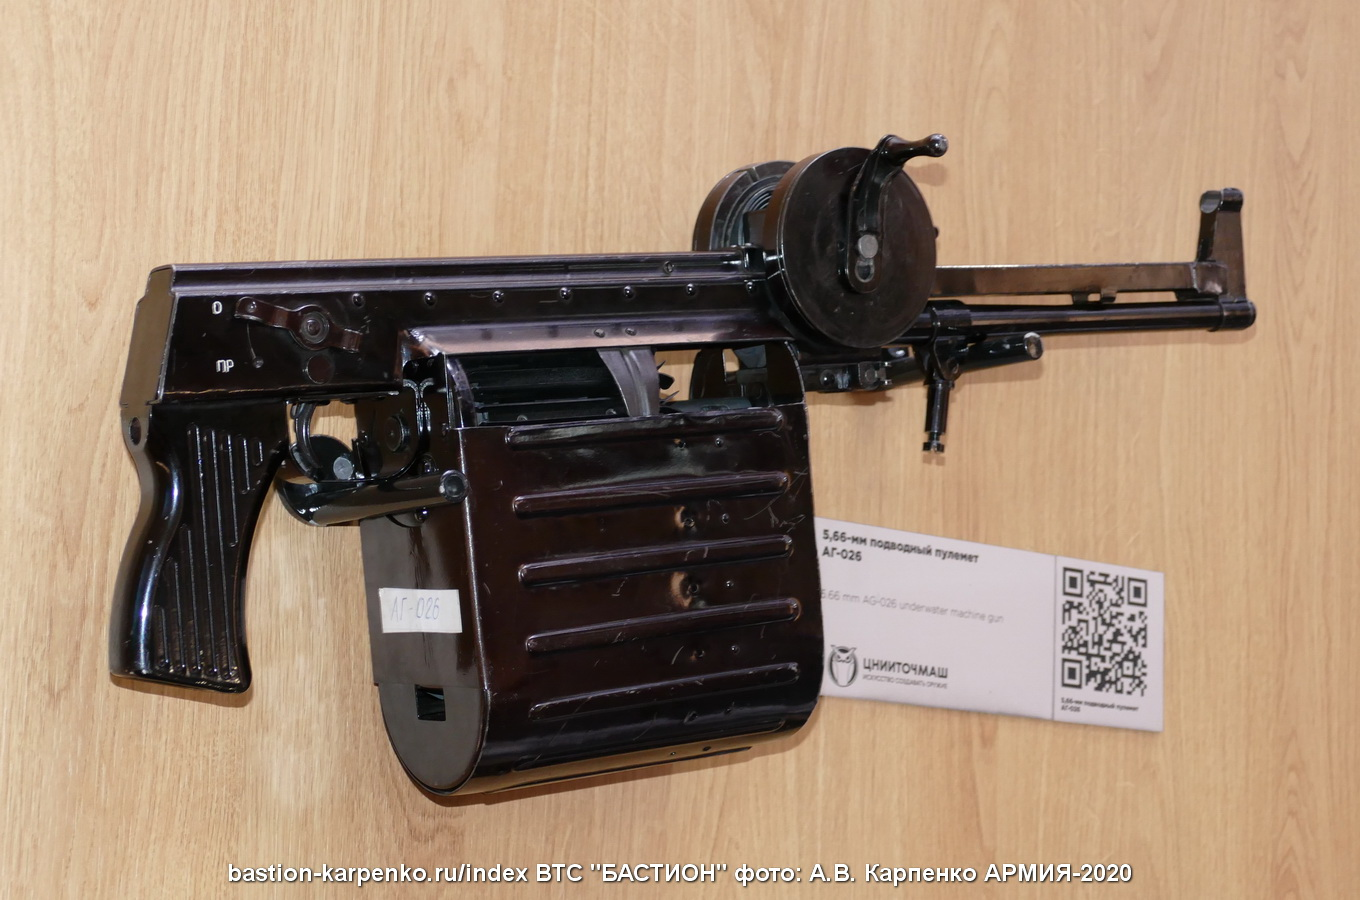 Russian Assault Rifles & Machine Guns Thread: #2 - Page 10 AG-026_ARMIA-2020_04